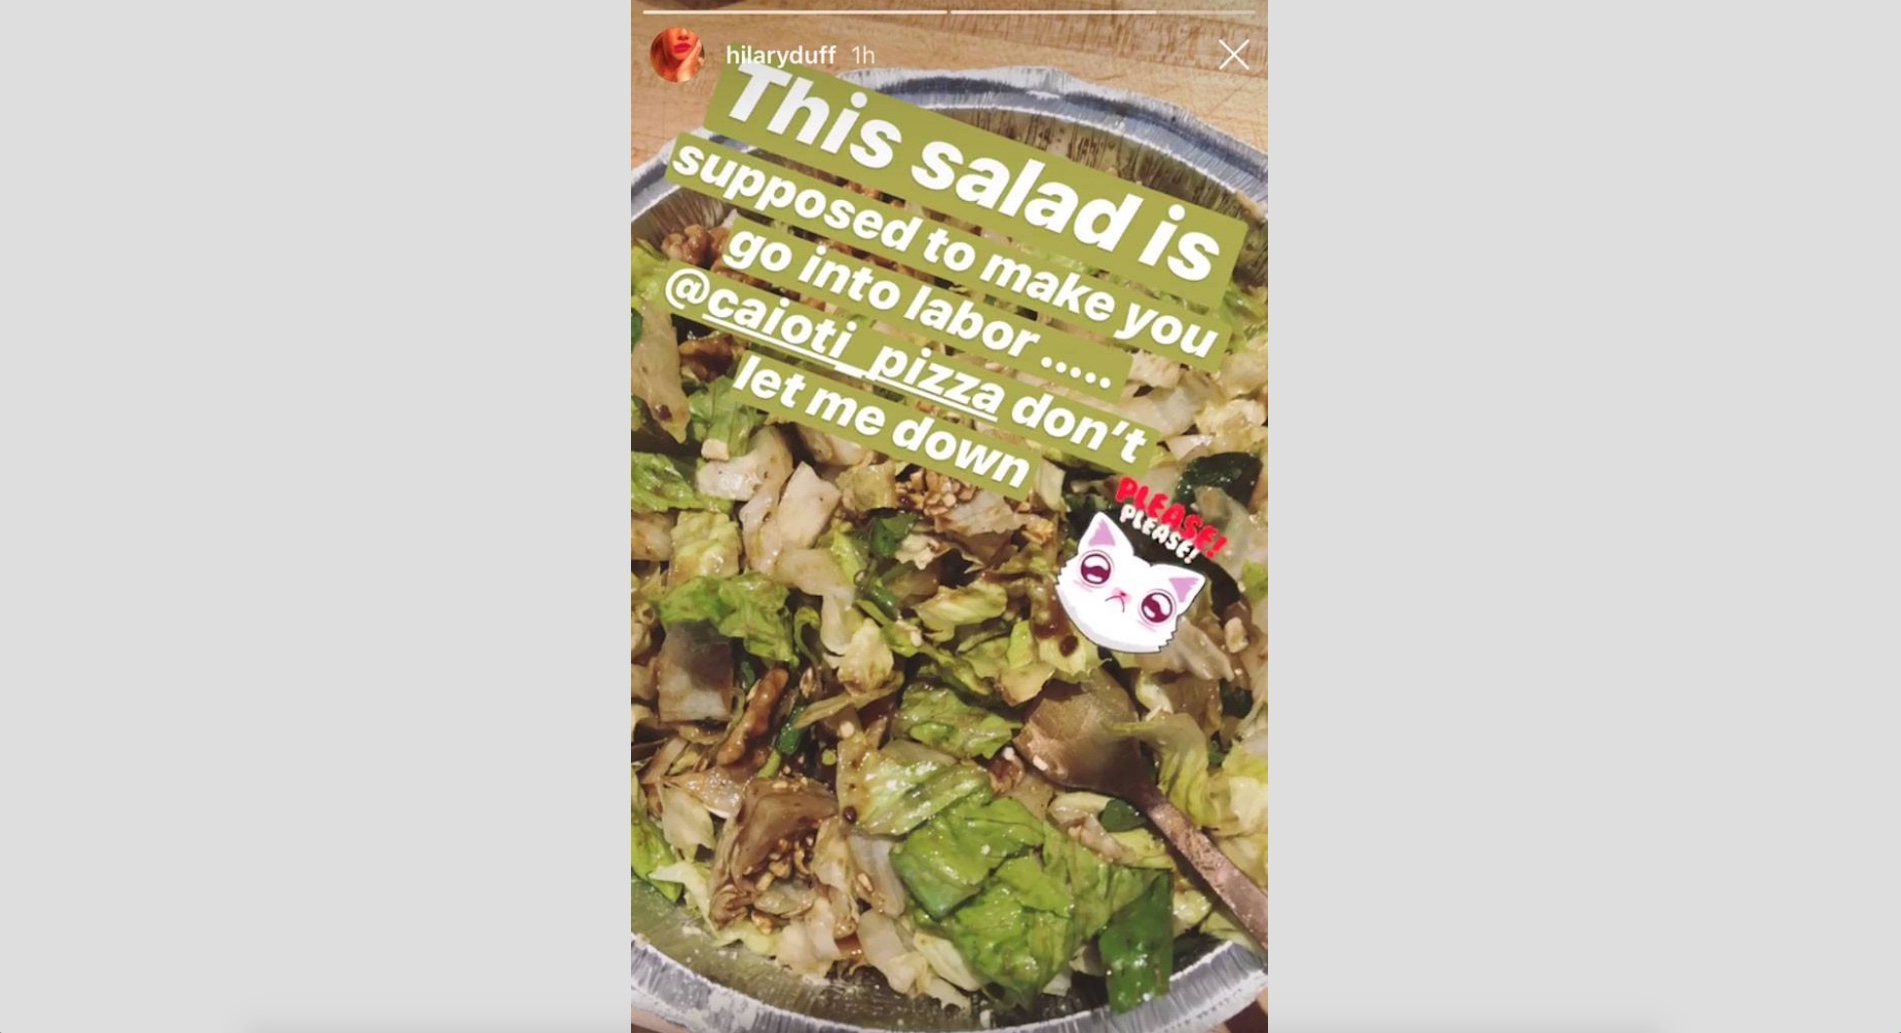 MR-Hilary Duff Salad